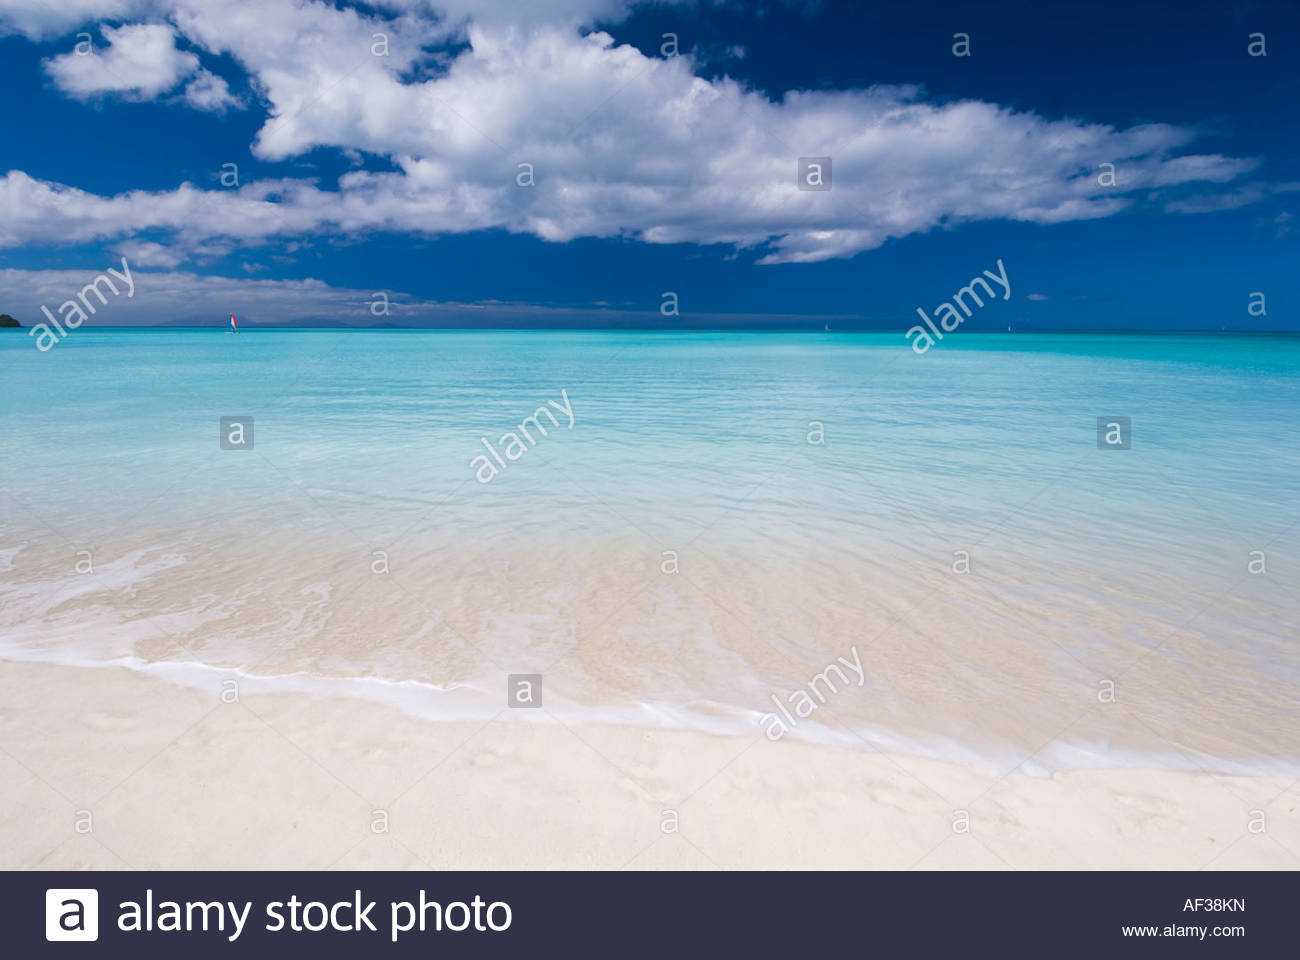 A classic view of turquoise seas and white sand beach at Jolly Beach, Antigua, Caribbean - Stock Image